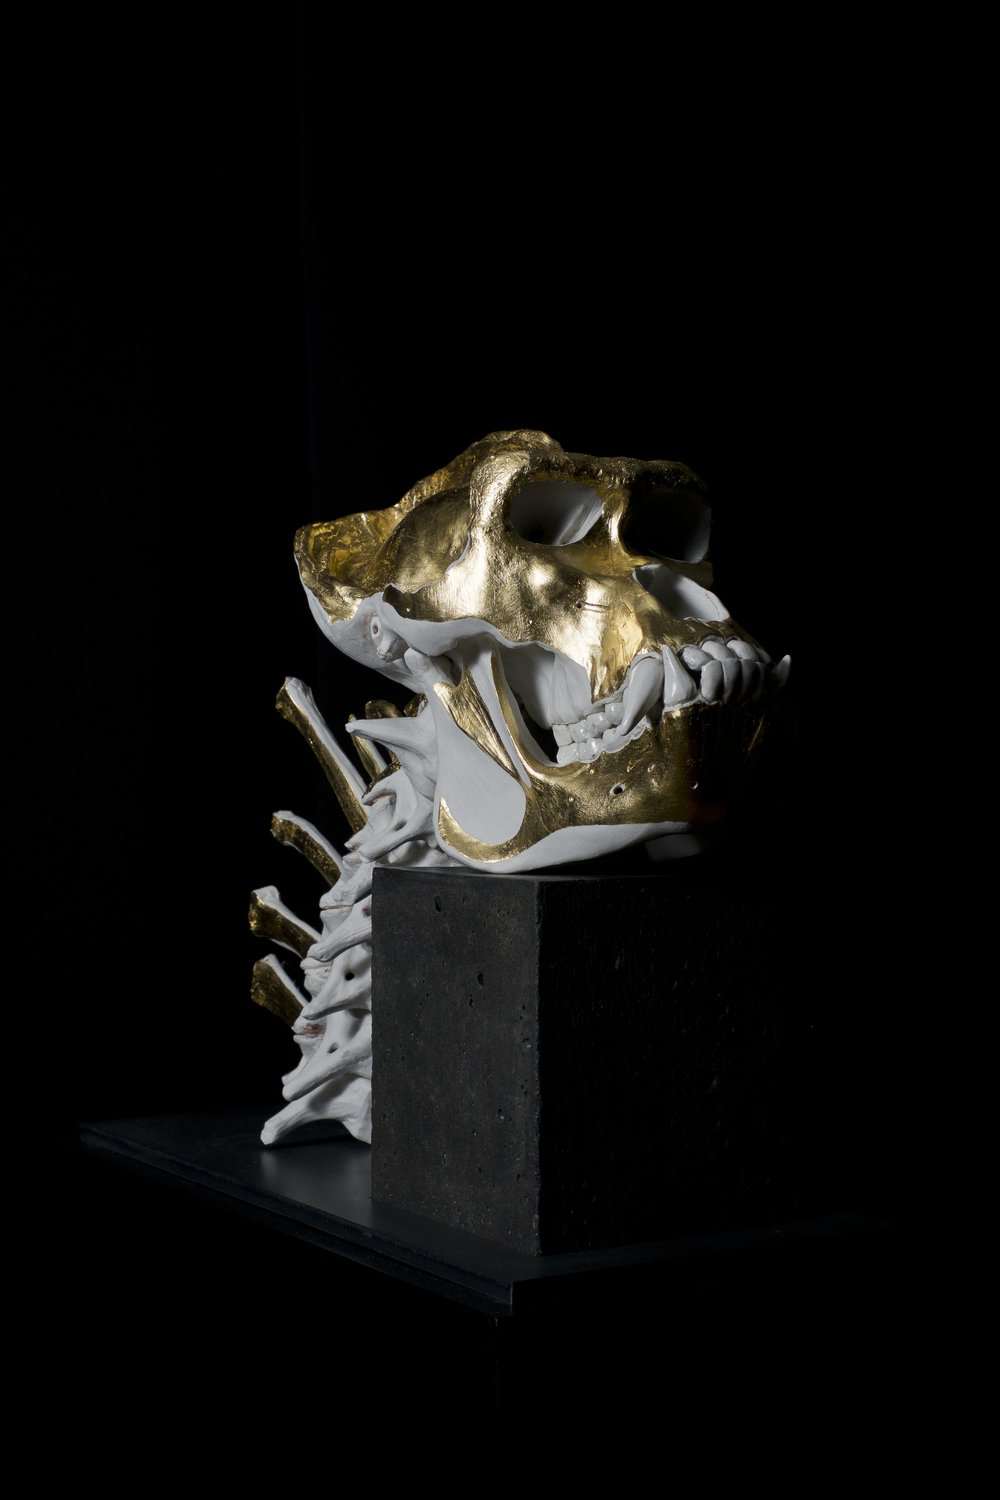 JAMES WEBSTER GORILLA SKULL